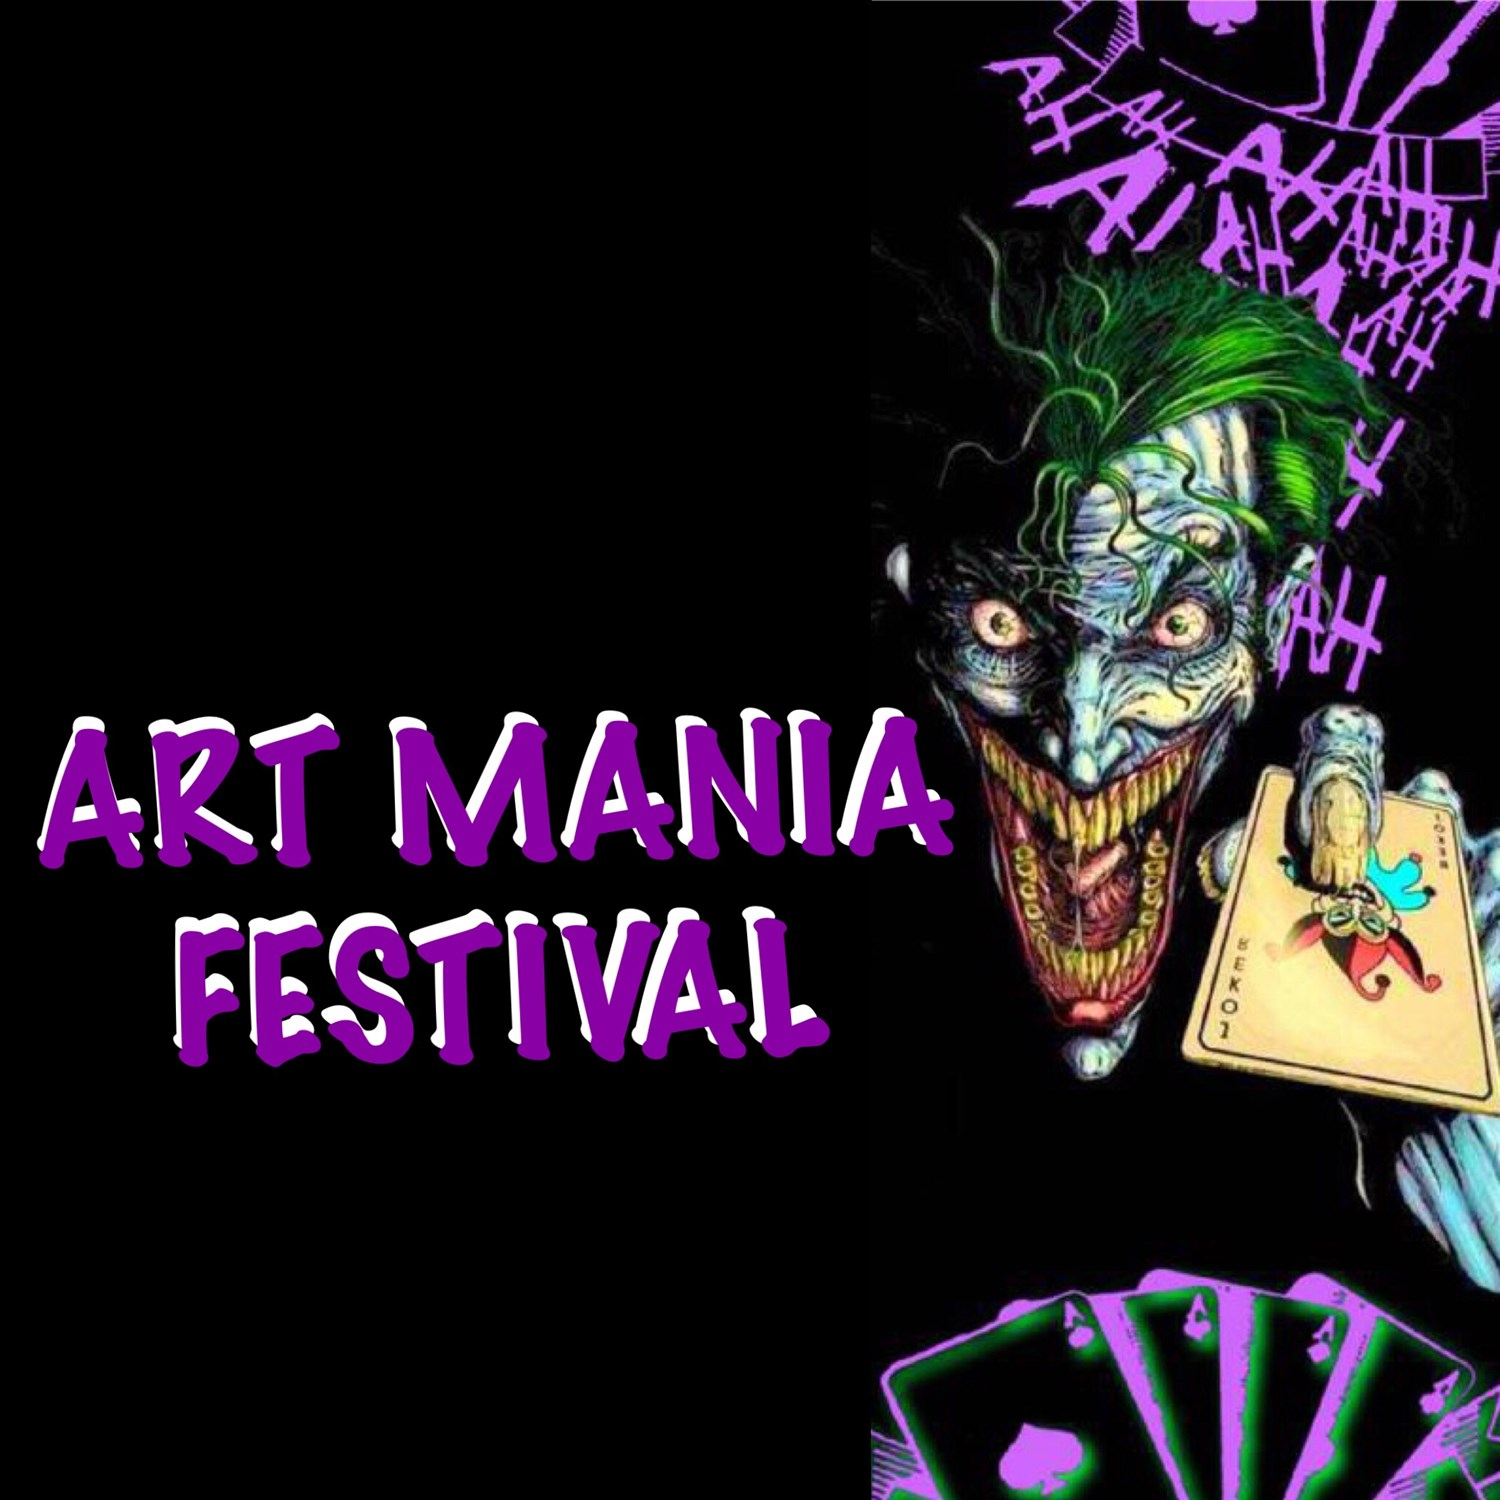 ART MANIA FESTIVAL  on Aug 09, 17:00@LOFTY SPACES - Buy tickets and Get information on Fine Art Ministry